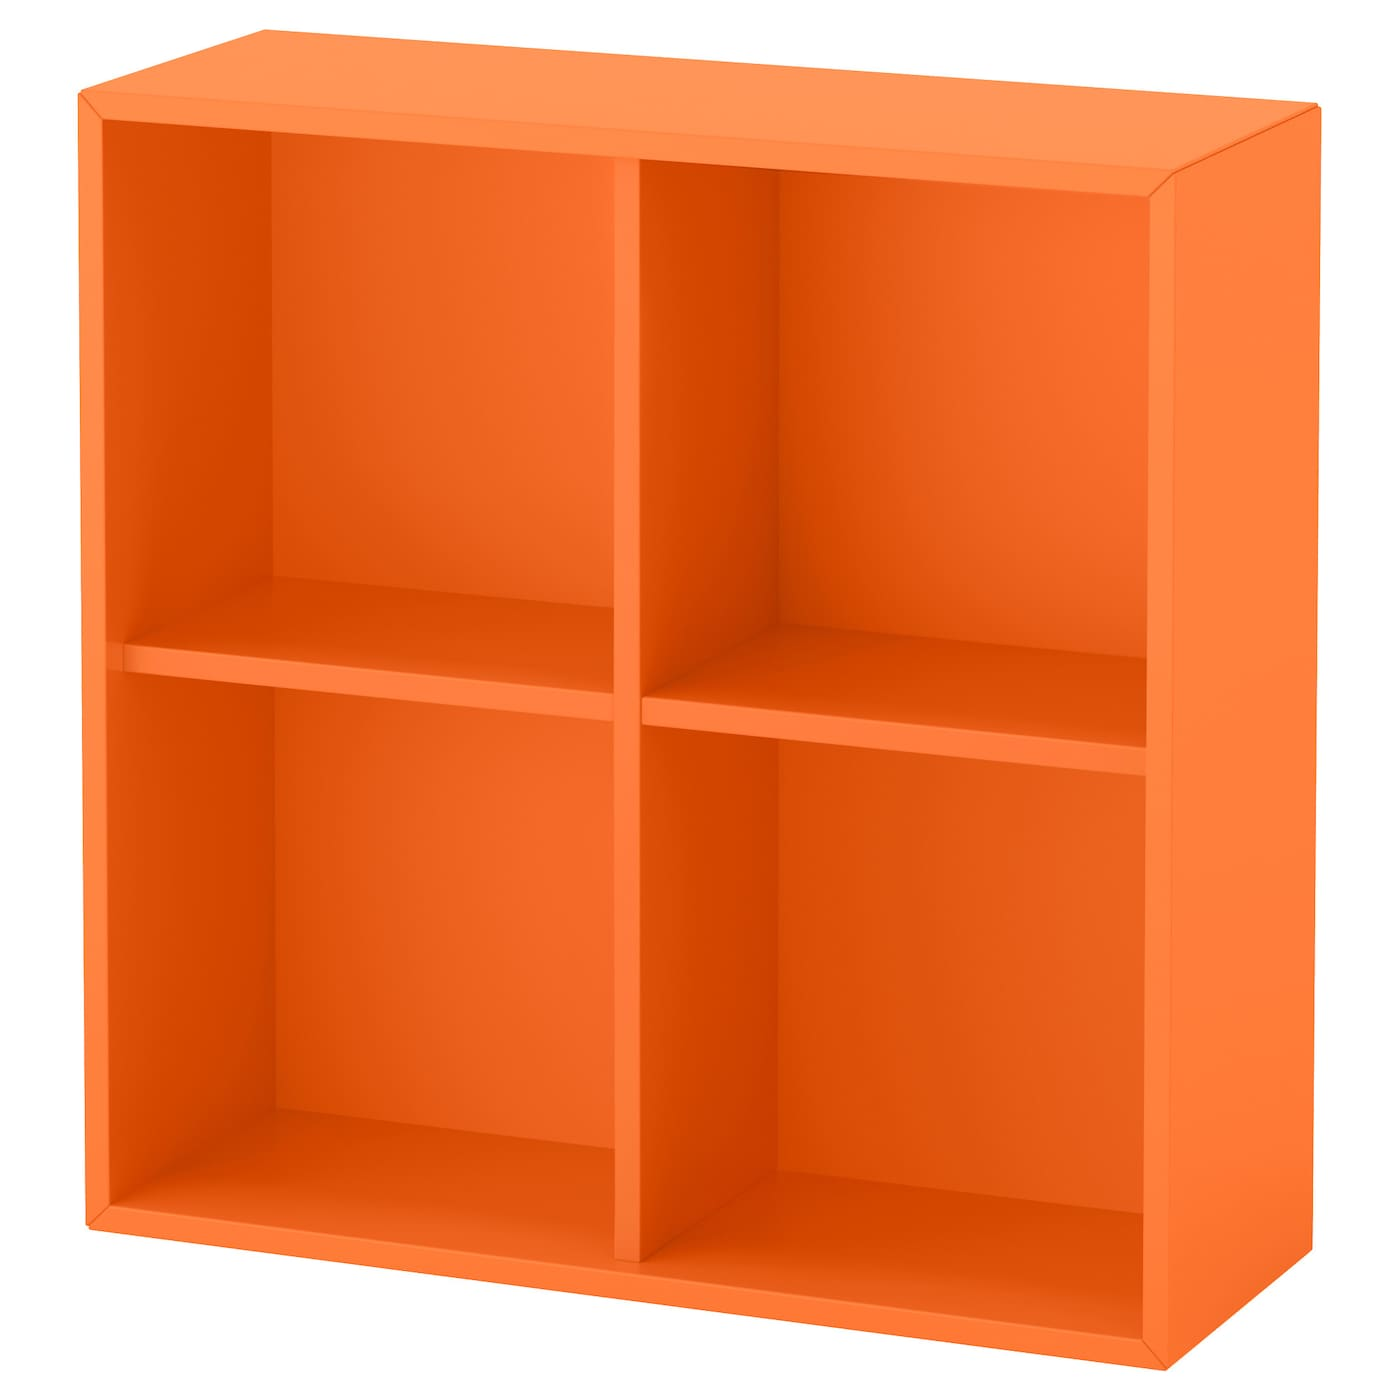 eket rangement 4 compartiments orange 70x25x70 cm ikea. Black Bedroom Furniture Sets. Home Design Ideas